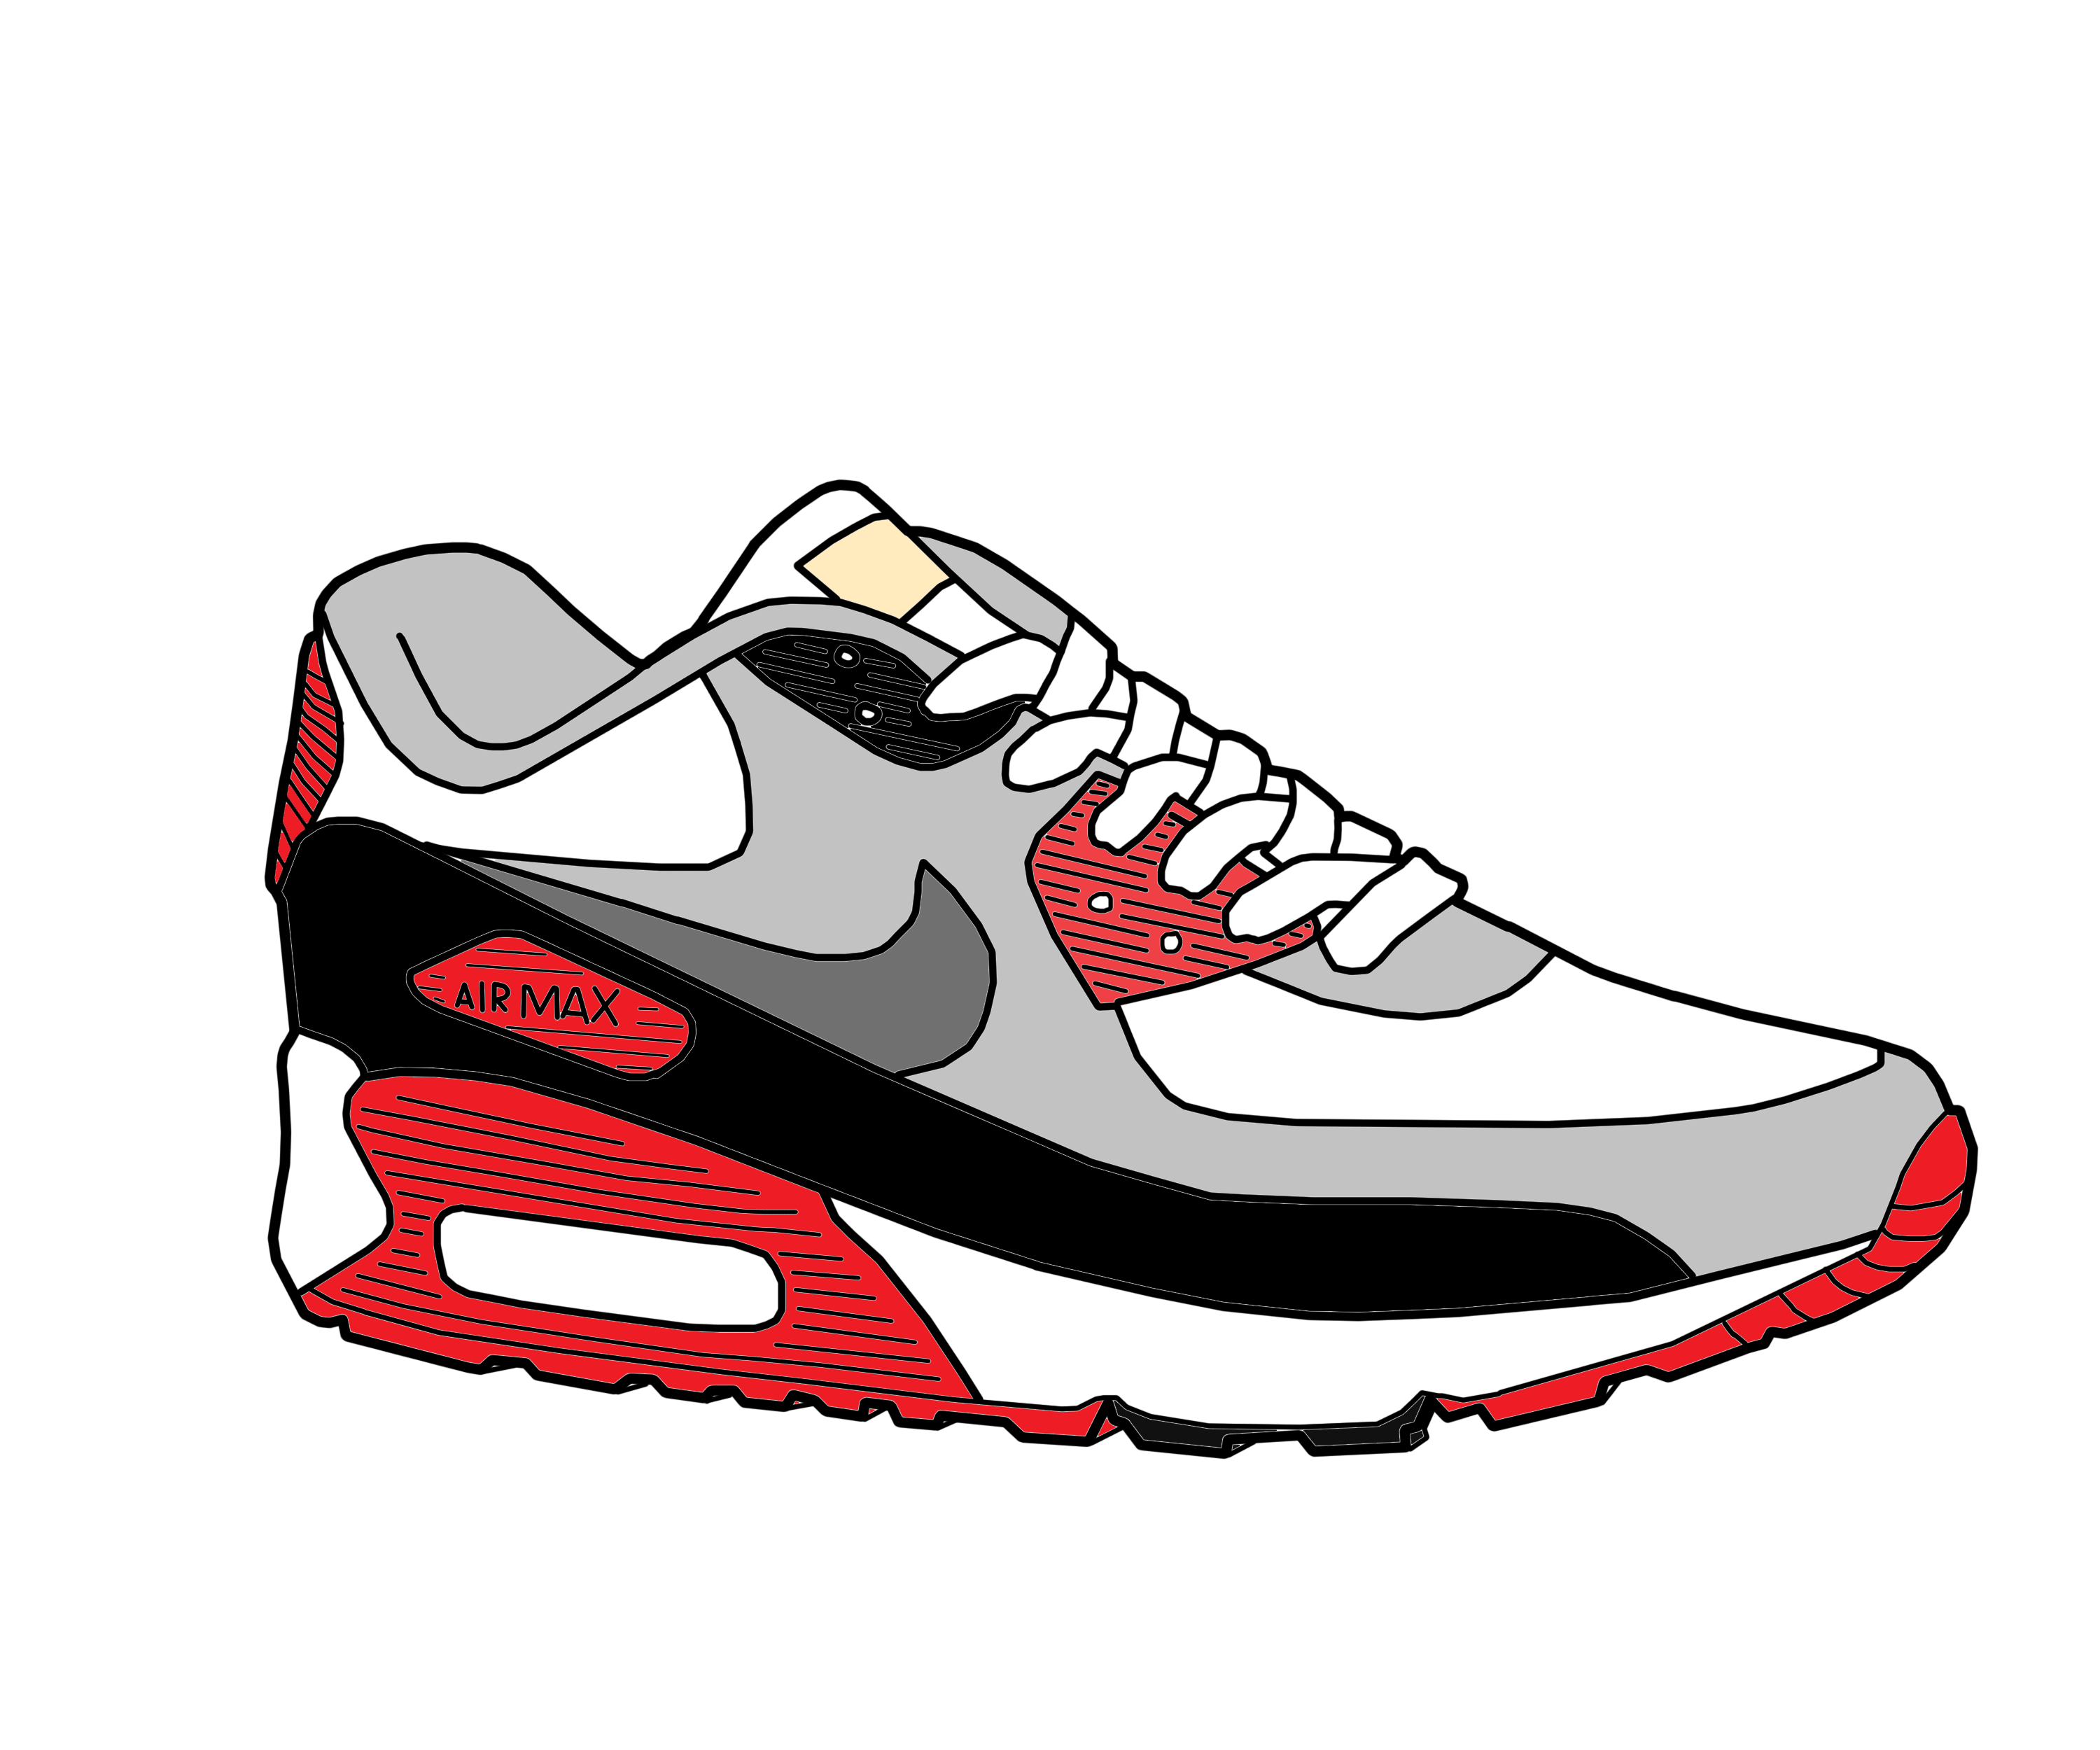 air max 90 drawing